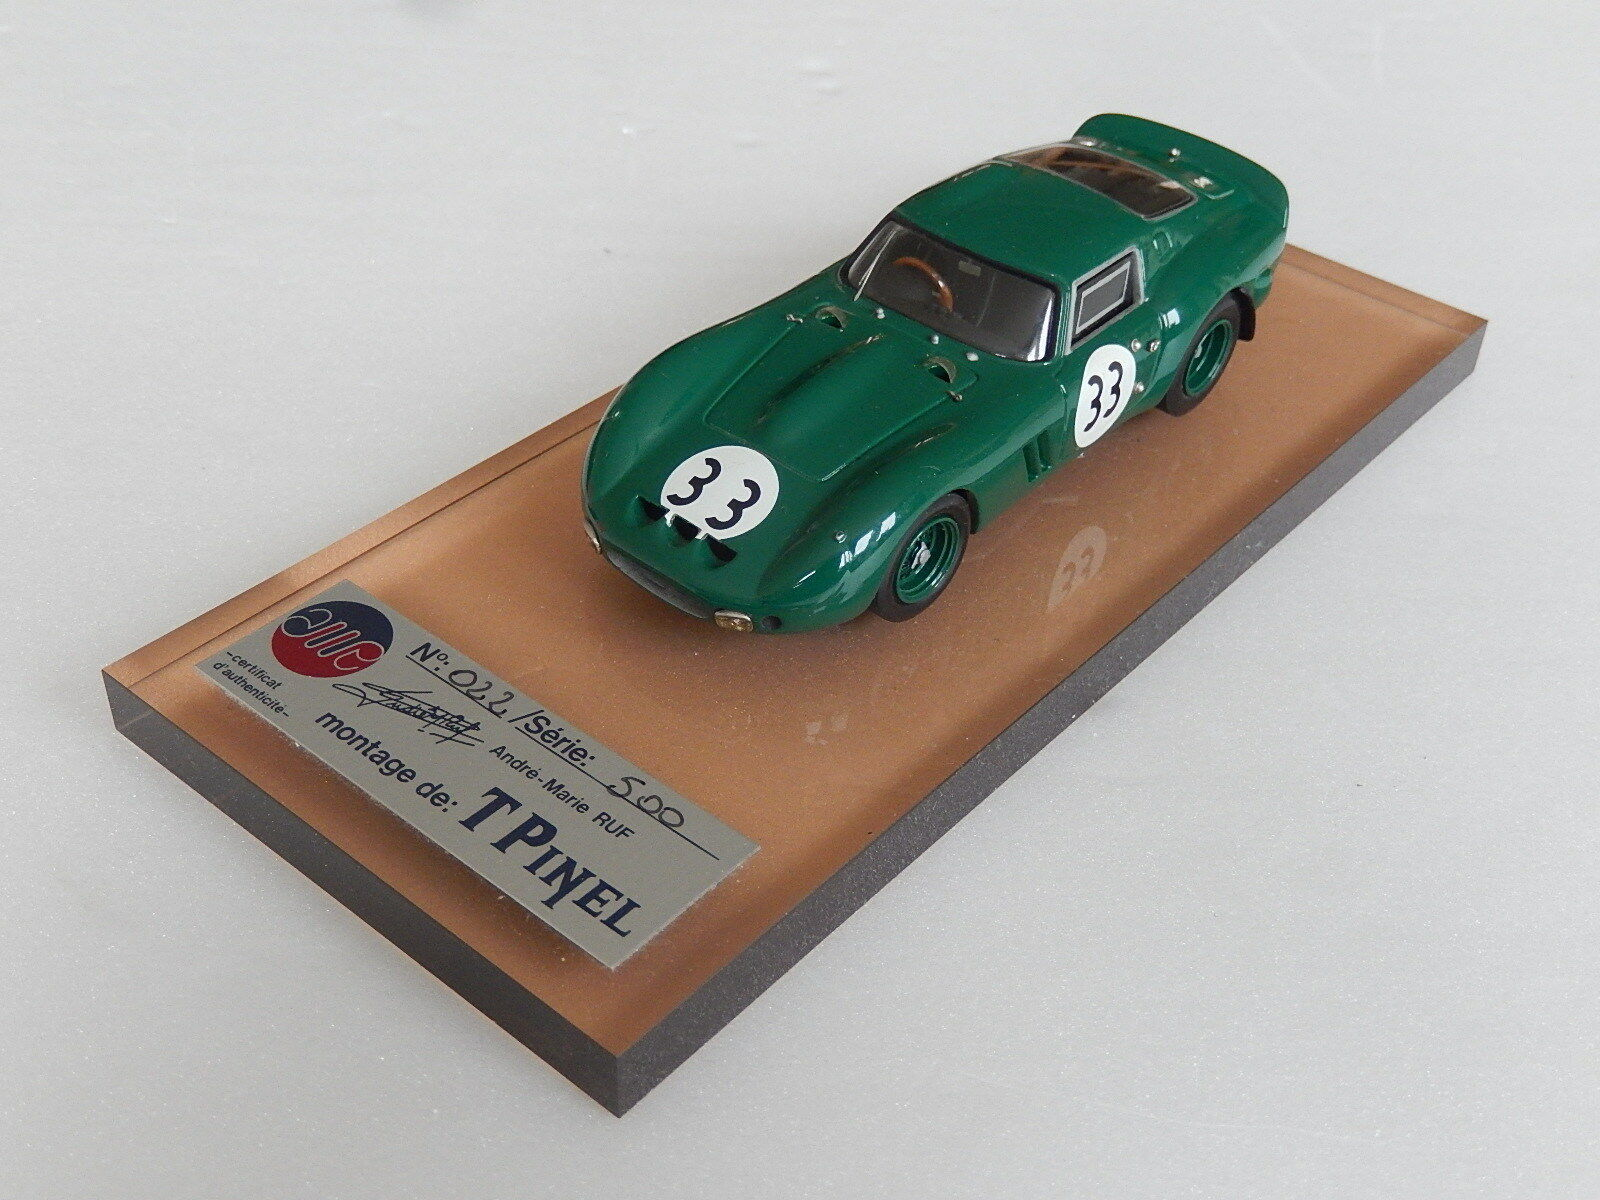 1/43 AMR Ferrari 250 GTO 4491GT 4491GT 4491GT Spa 1965   made in france no hiro bosica | Big Liquidation